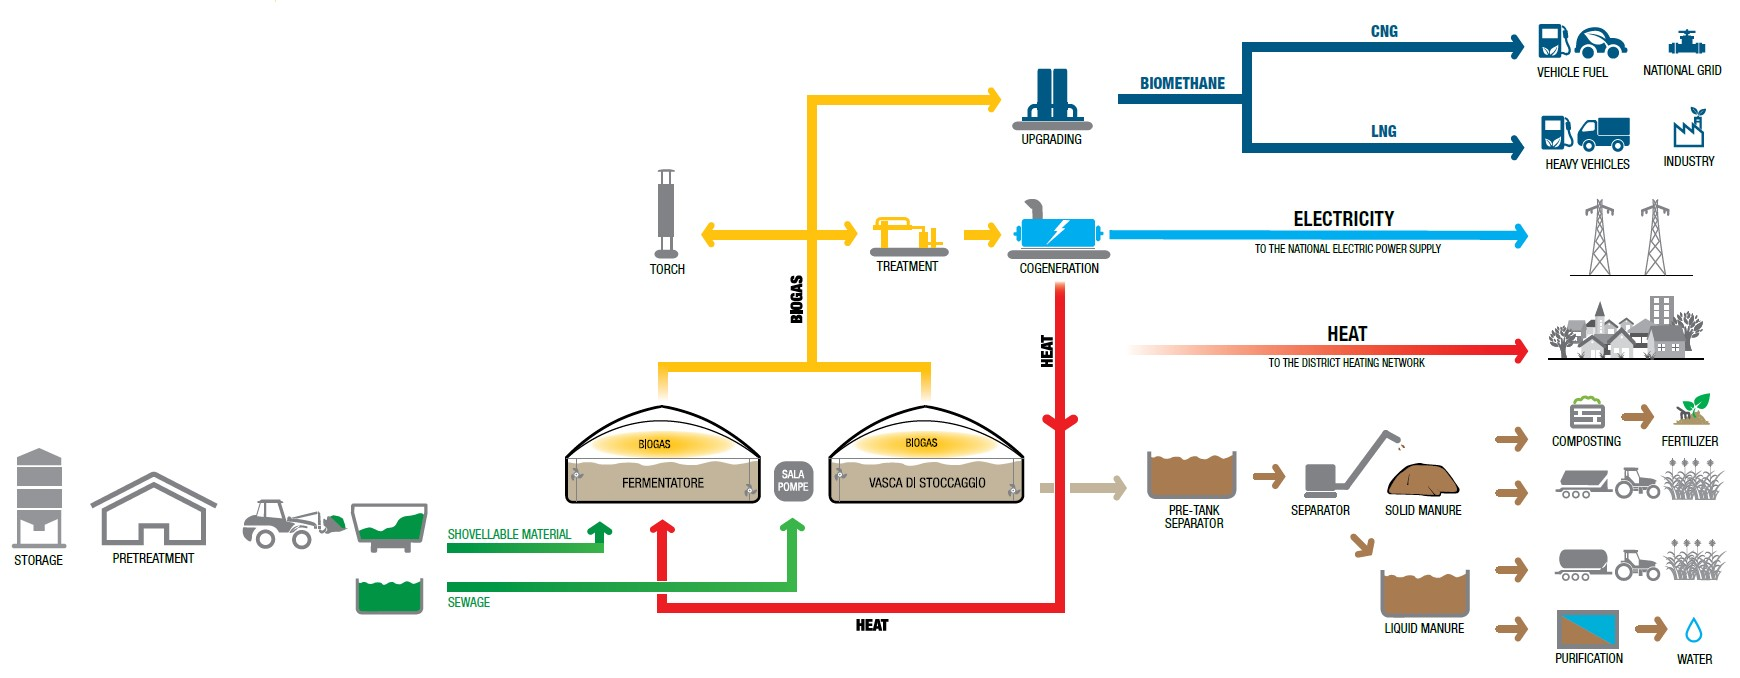 IES Biogas - Use of Biogas - Agricultural and agro industrial